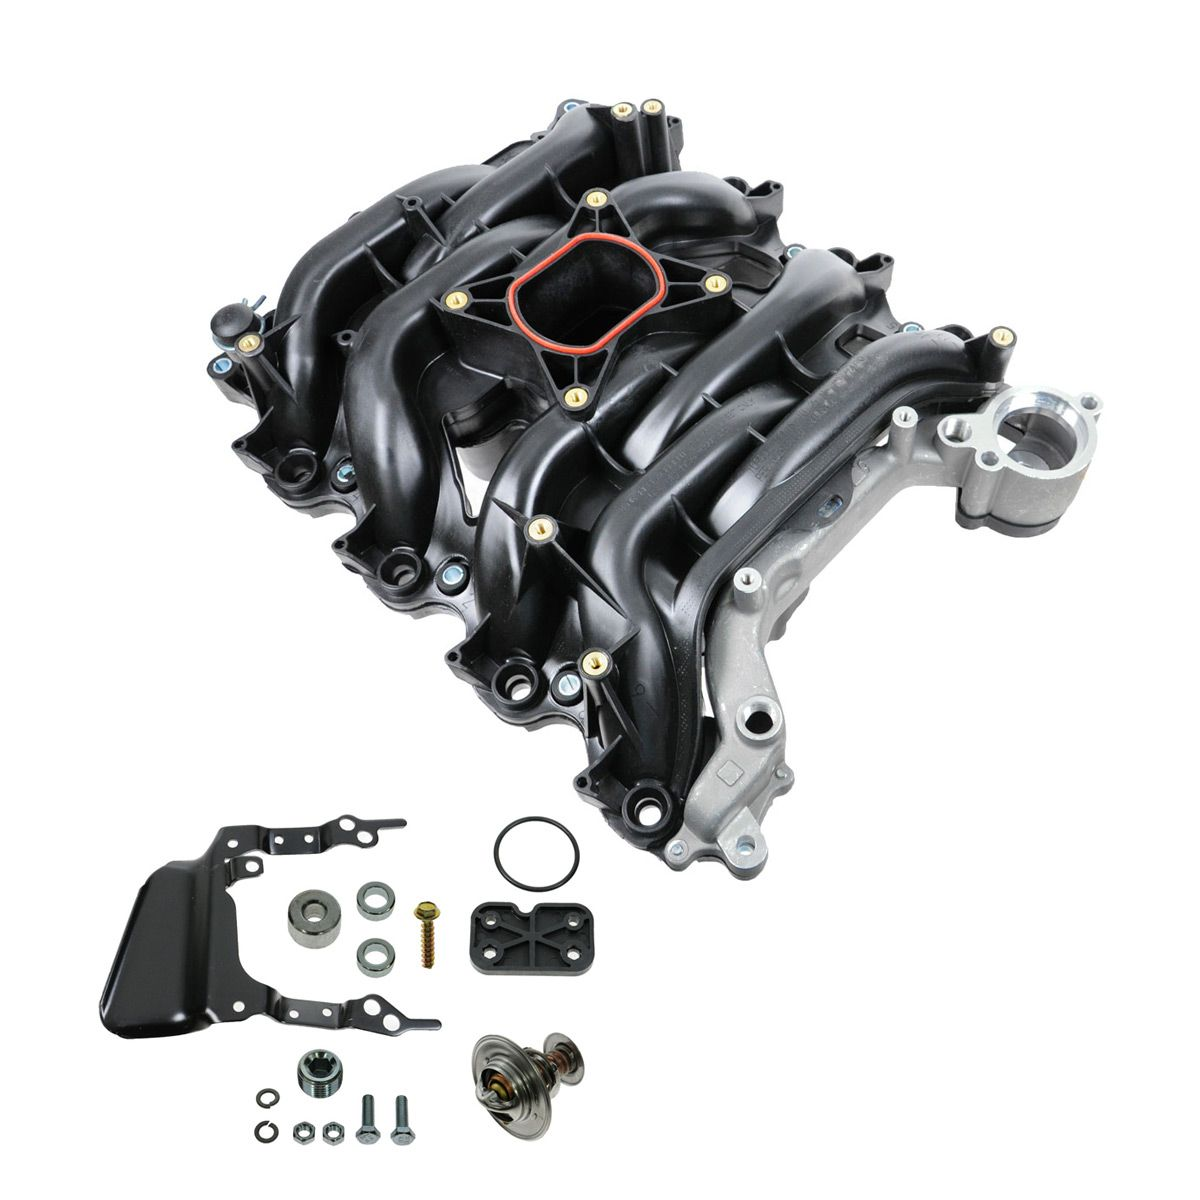 V8 Intake Manifold : Intake manifold w thermostat gaskets kit new for ford